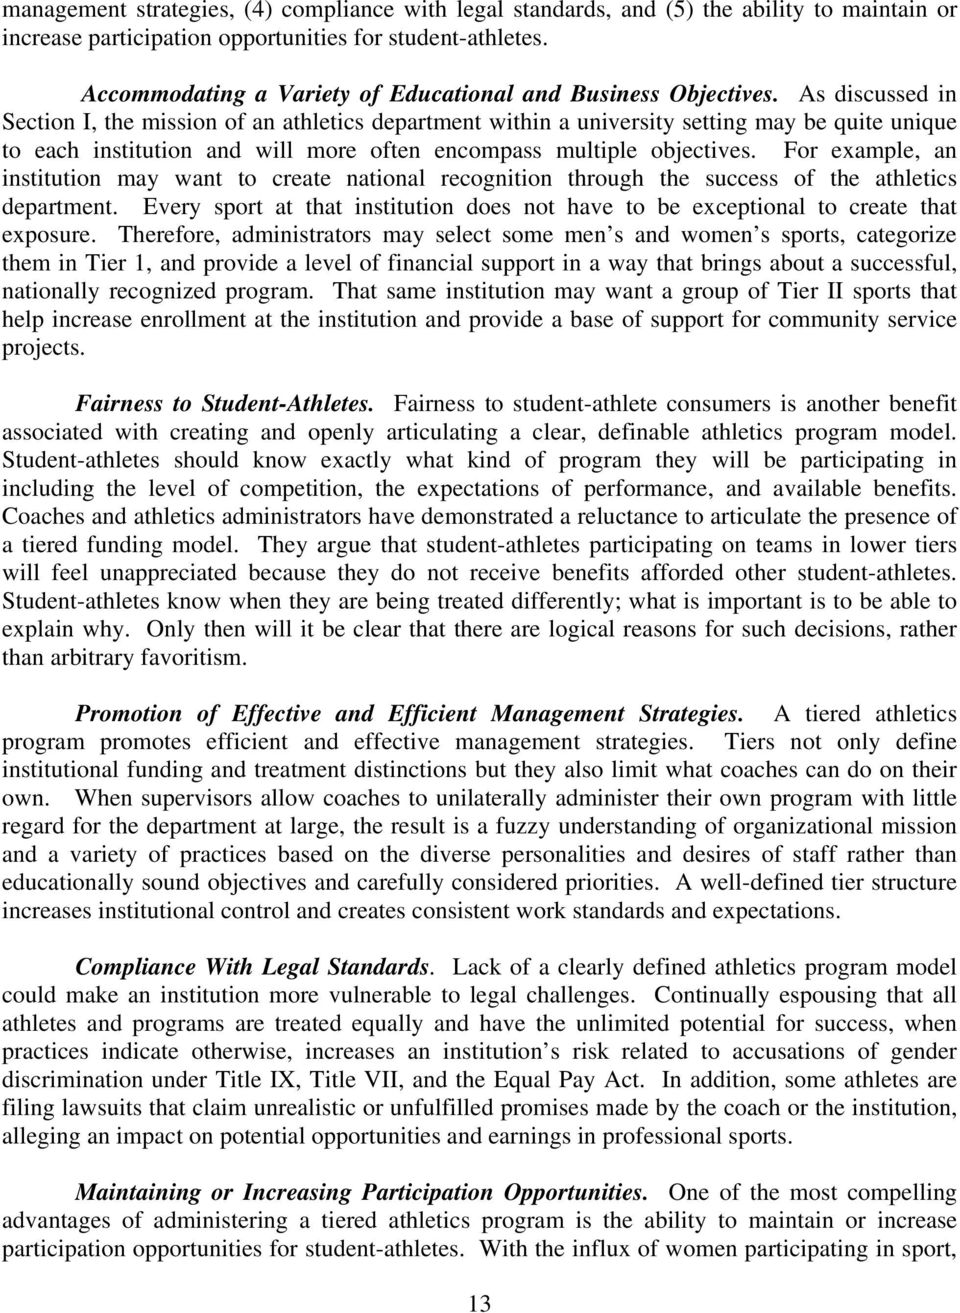 As discussed in Section I, the mission of an athletics department within a university setting may be quite unique to each institution and will more often encompass multiple objectives.